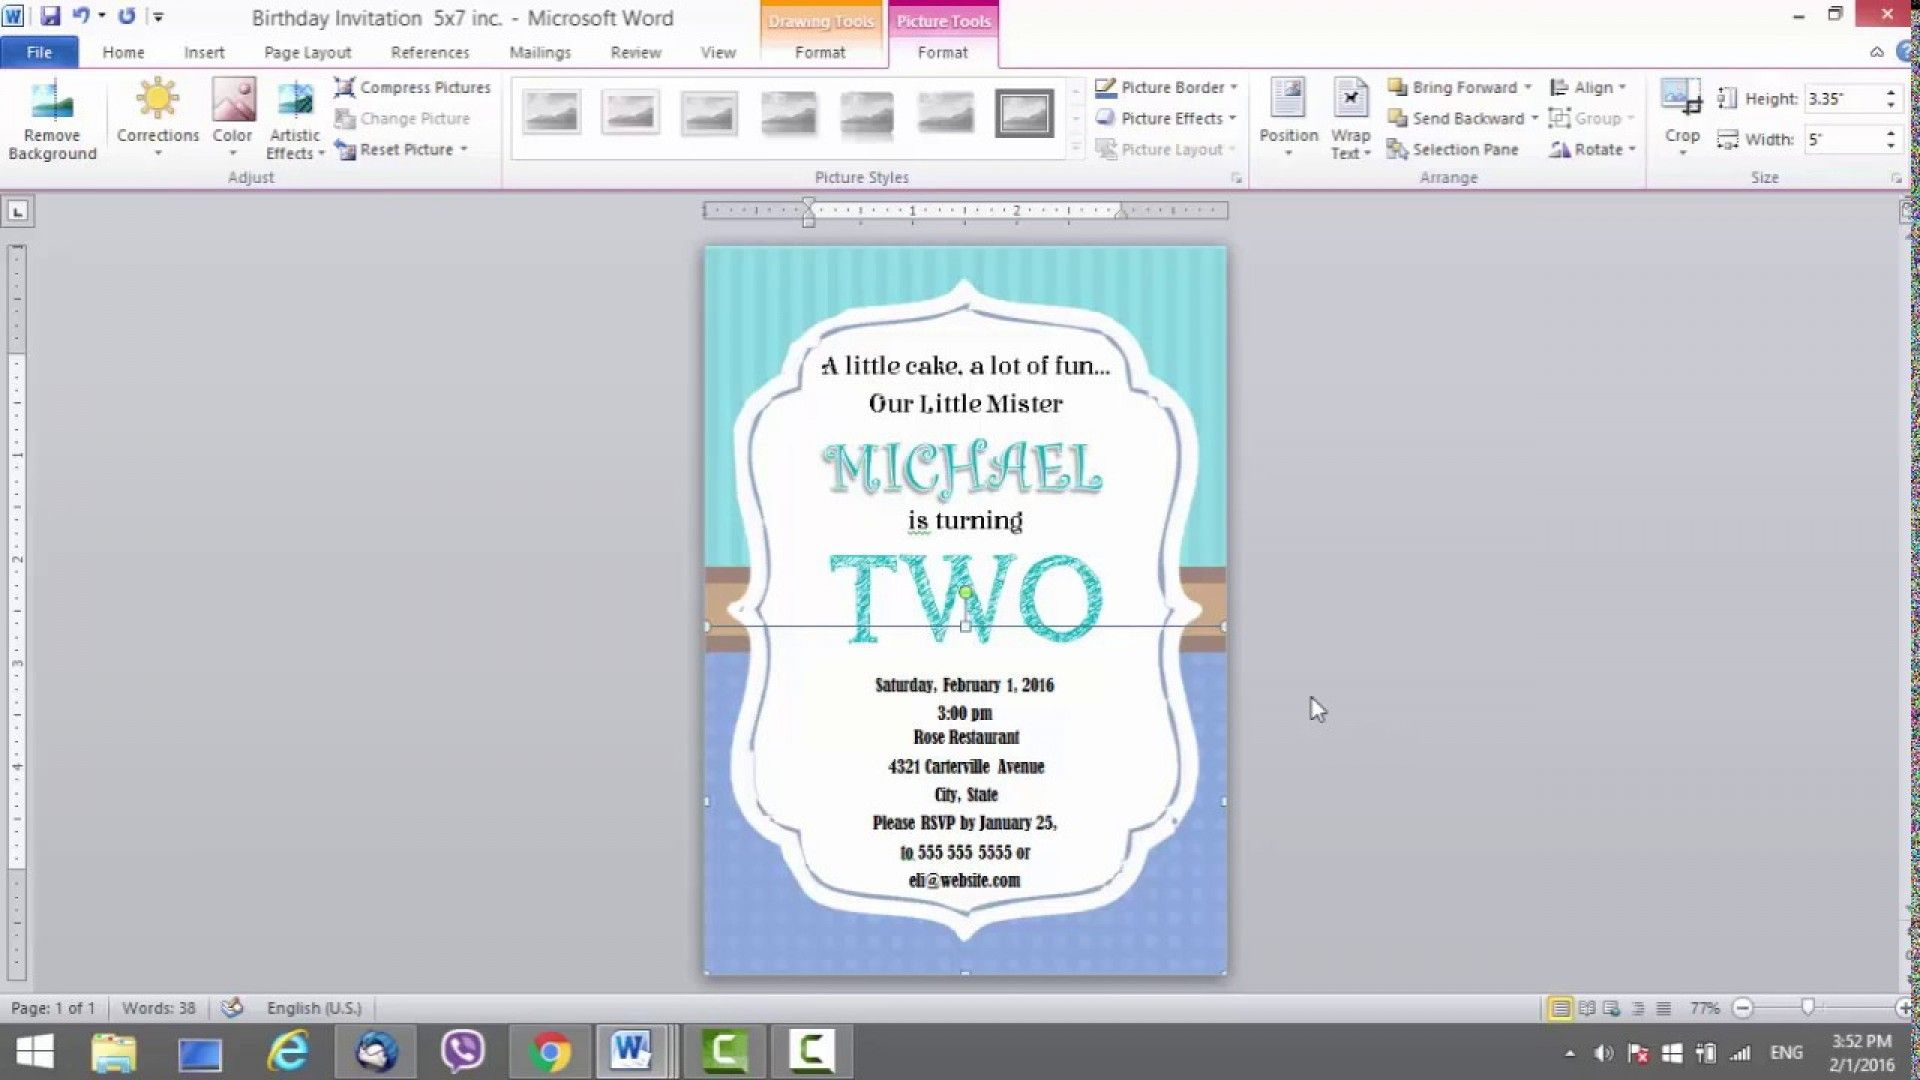 The Surprising 001 Template Ideas Microsoft Word Birthday Card Best Throughout M Birthday Card Template Party Invite Template Birthday Invitation Card Template